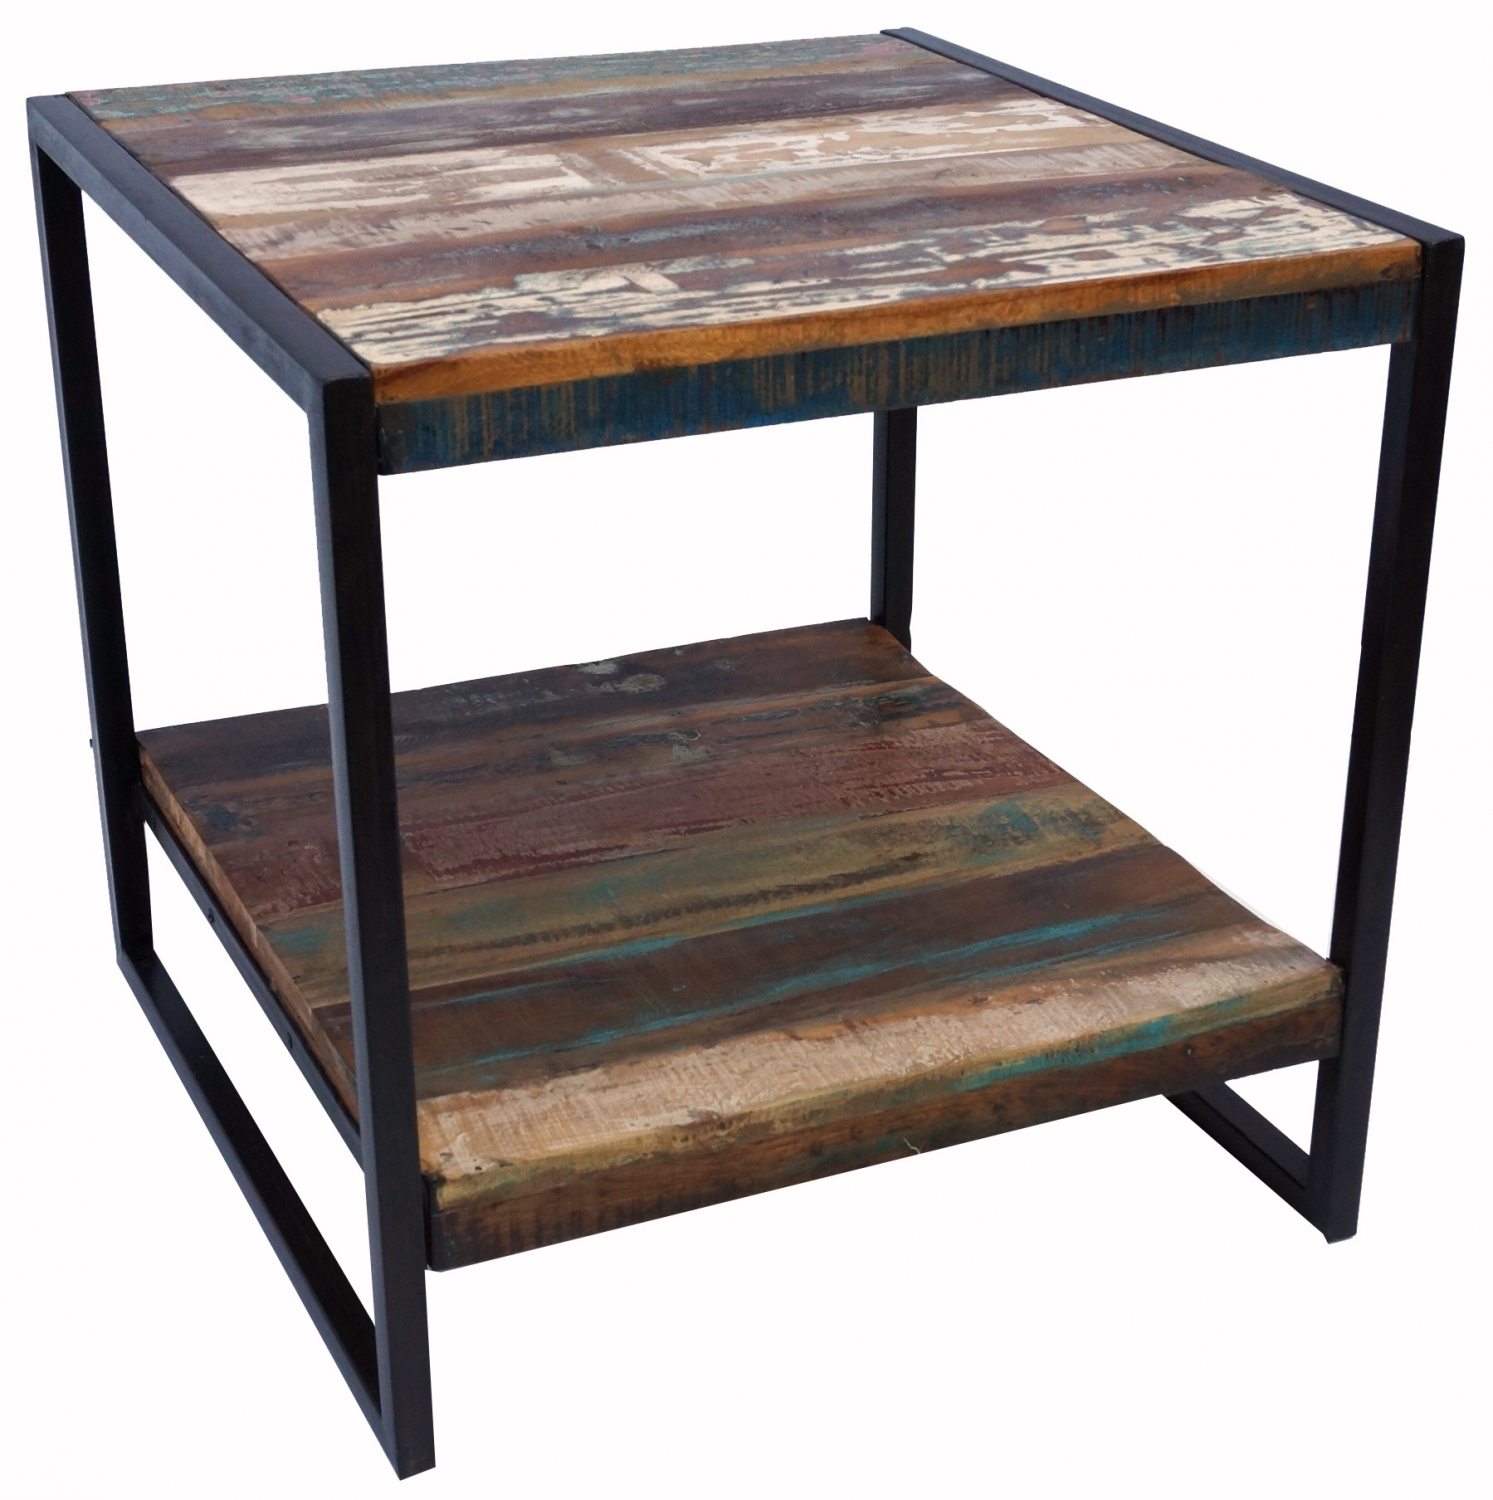 Retro Beistelltisch Vintage Side Table Metal Bedside Table And Recycled Wood Model 1 60x60x60 Cm